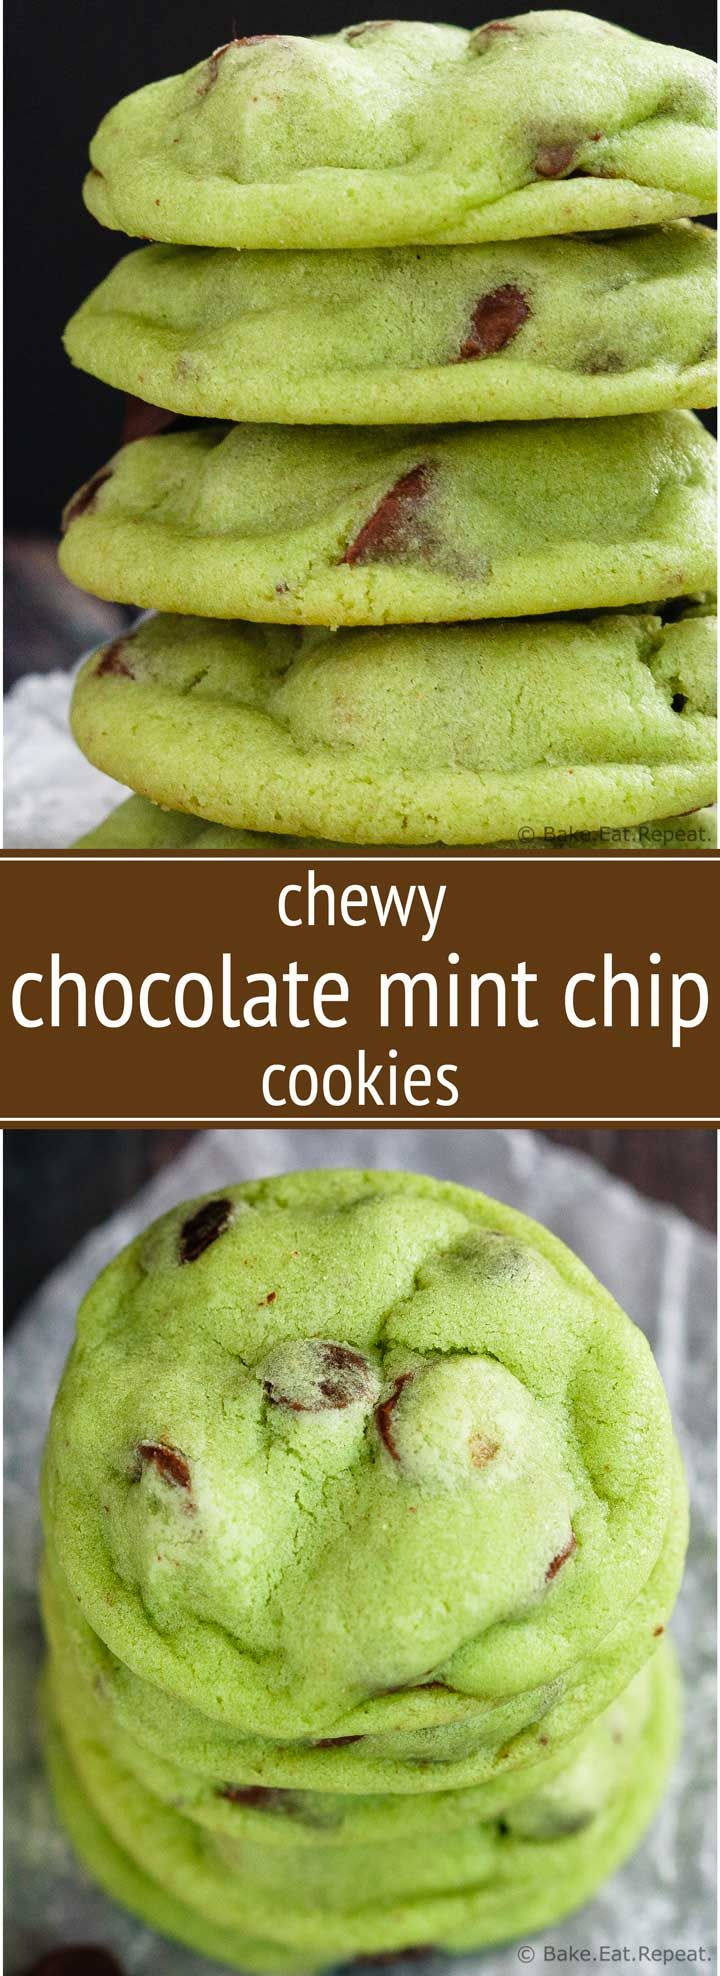 Chewy Chocolate Mint Chip Cookies - Chewy chocolate mint chip cookies that are coloured green for a perfect St. Patrick's Day treat - or any time really!